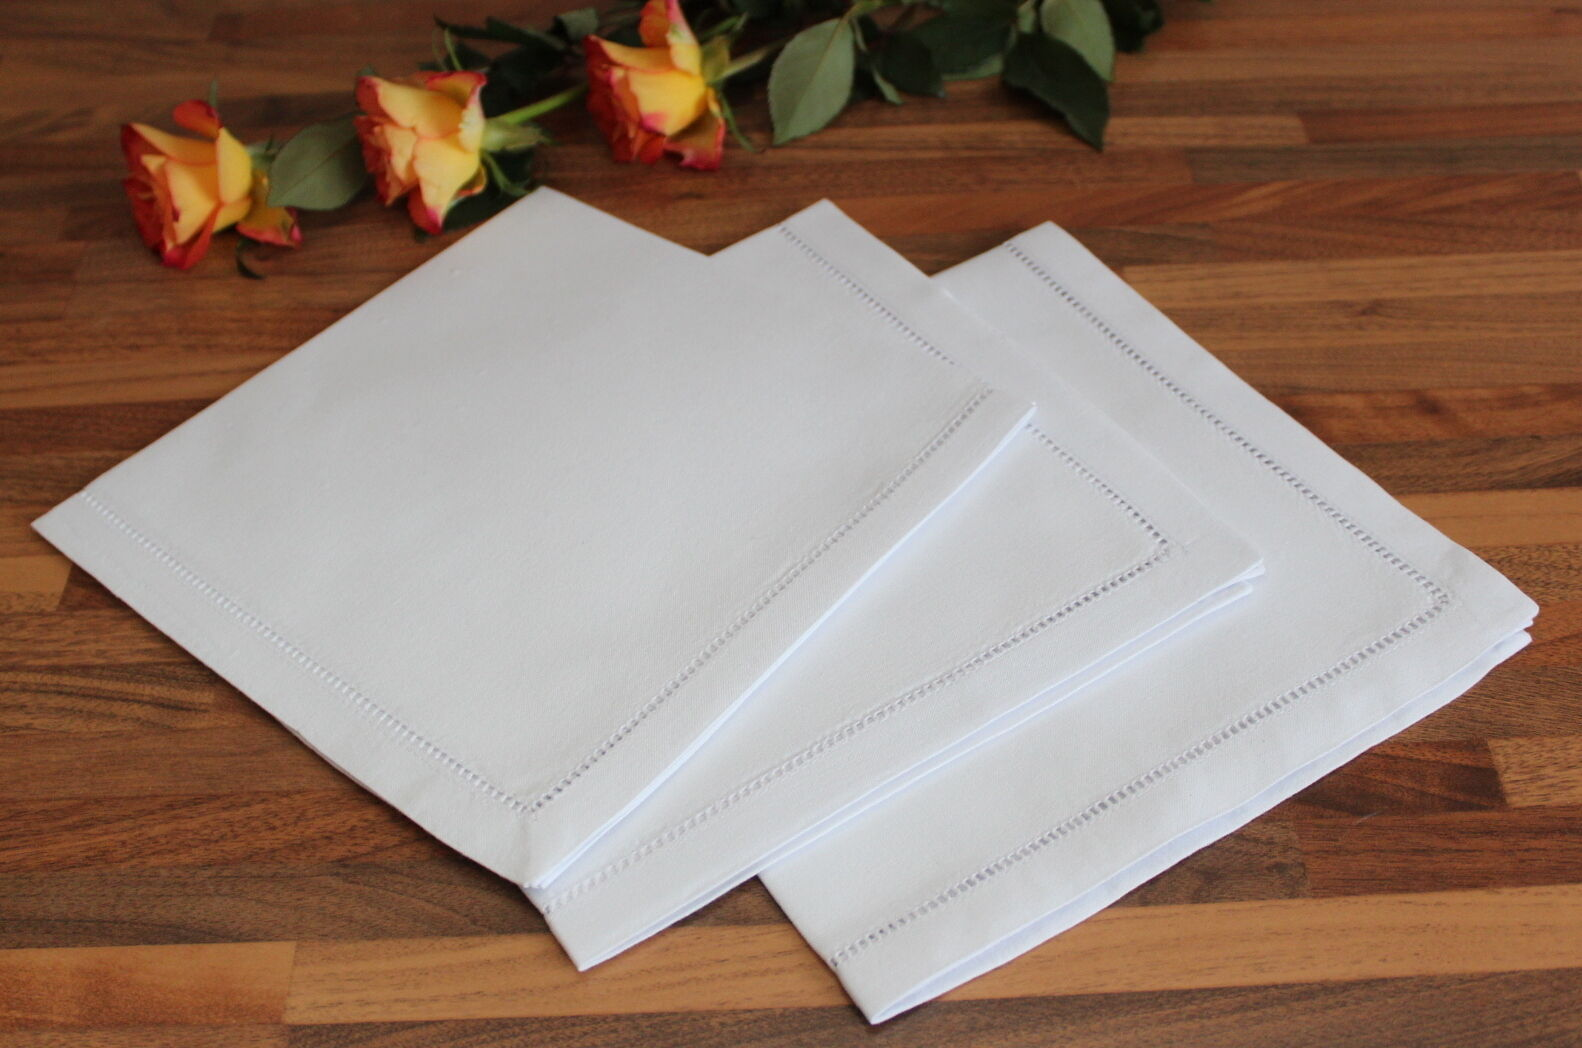 Napkins Set 100% Cotton Dining Napkins - Hemstitch Table Linen Cloth White